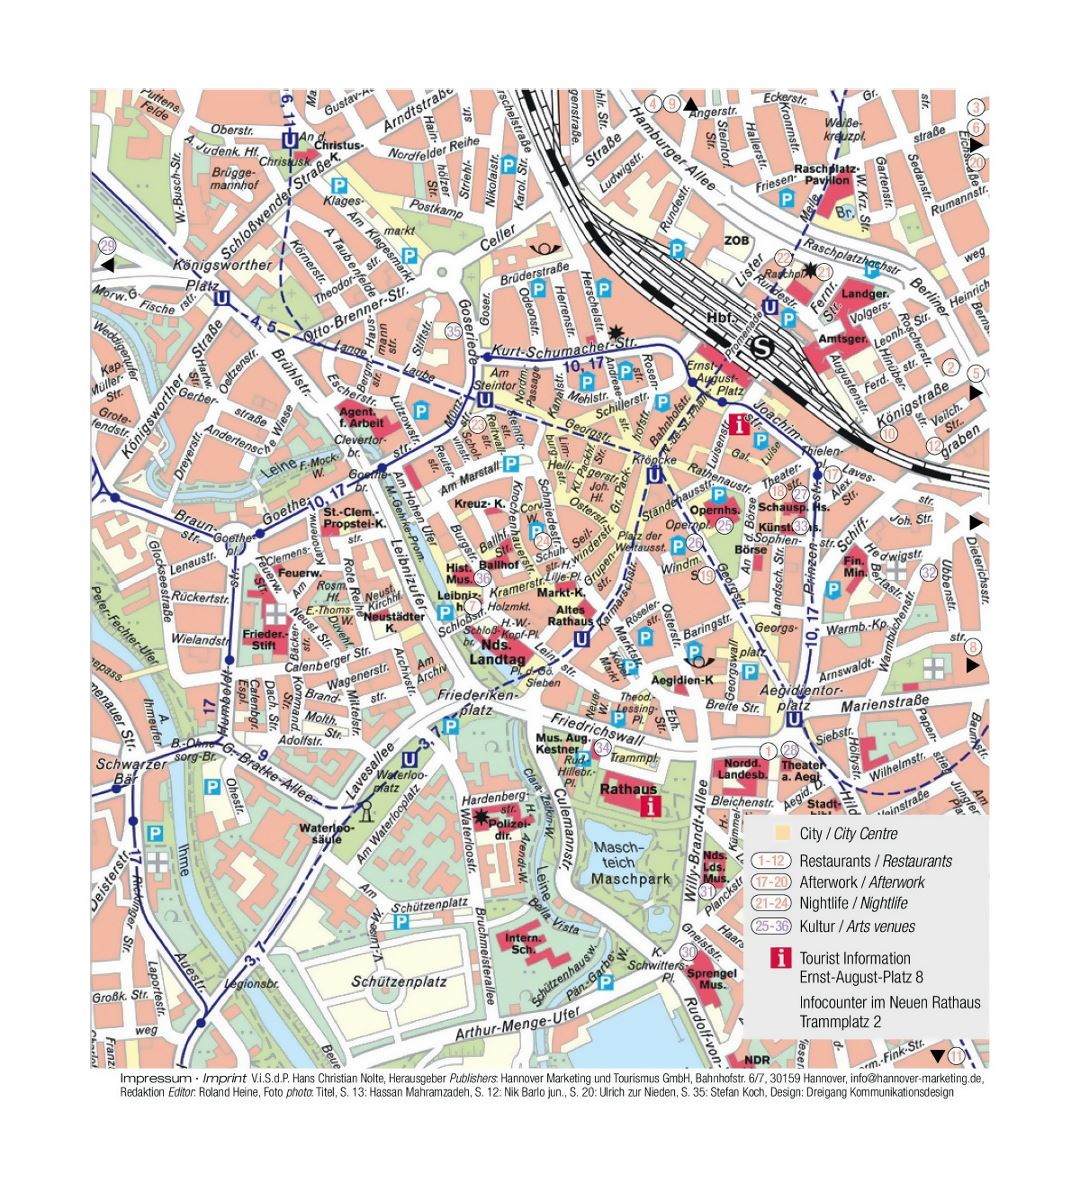 Detailed tourist map of central part of Hannover city